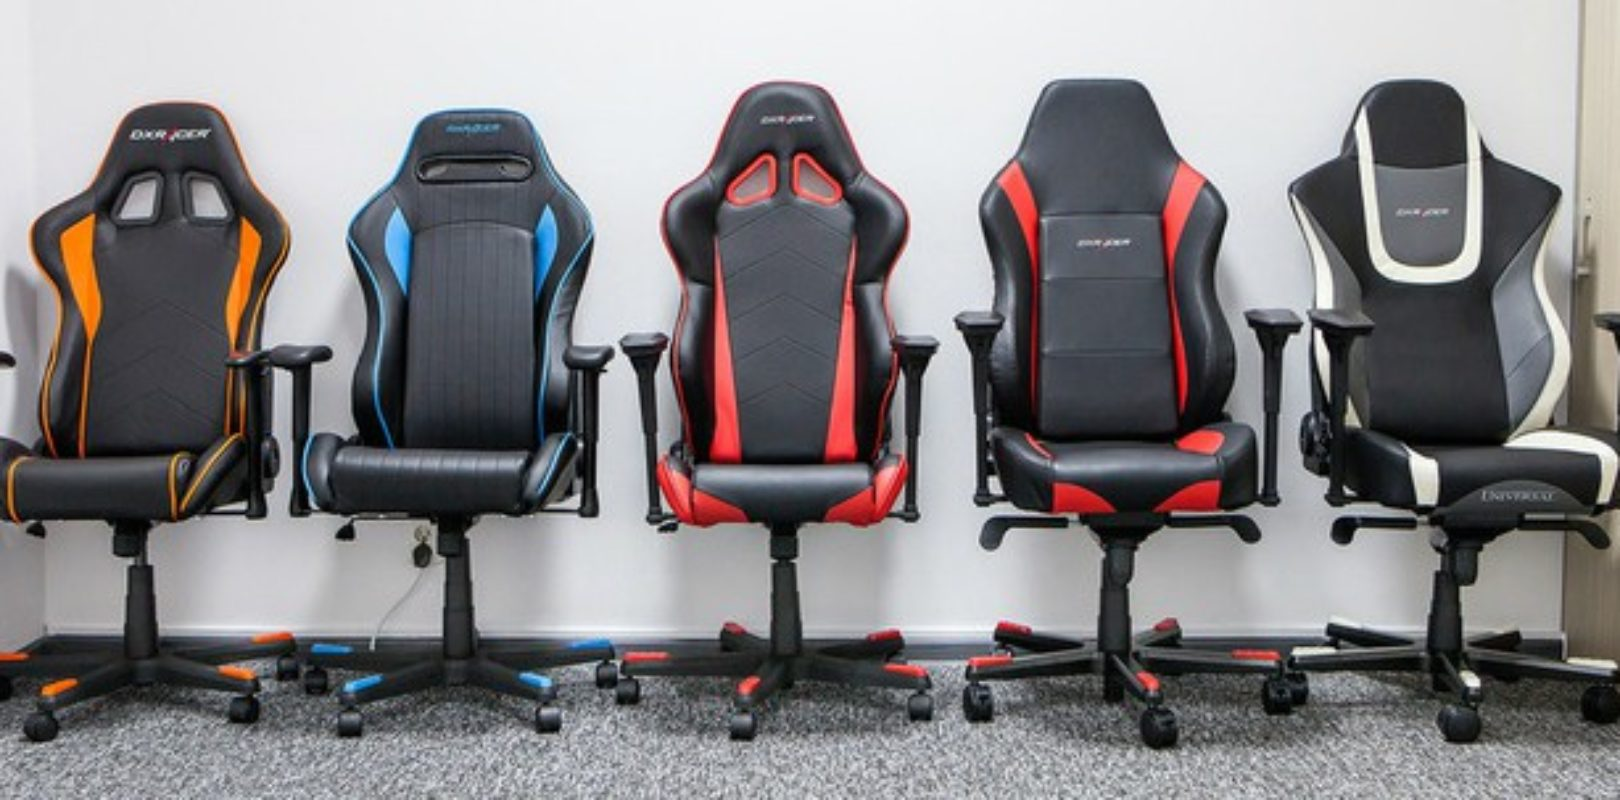 10 Best Gaming Chairs In 2019 - Rivipedia - Top Gaming Chairs to Buy